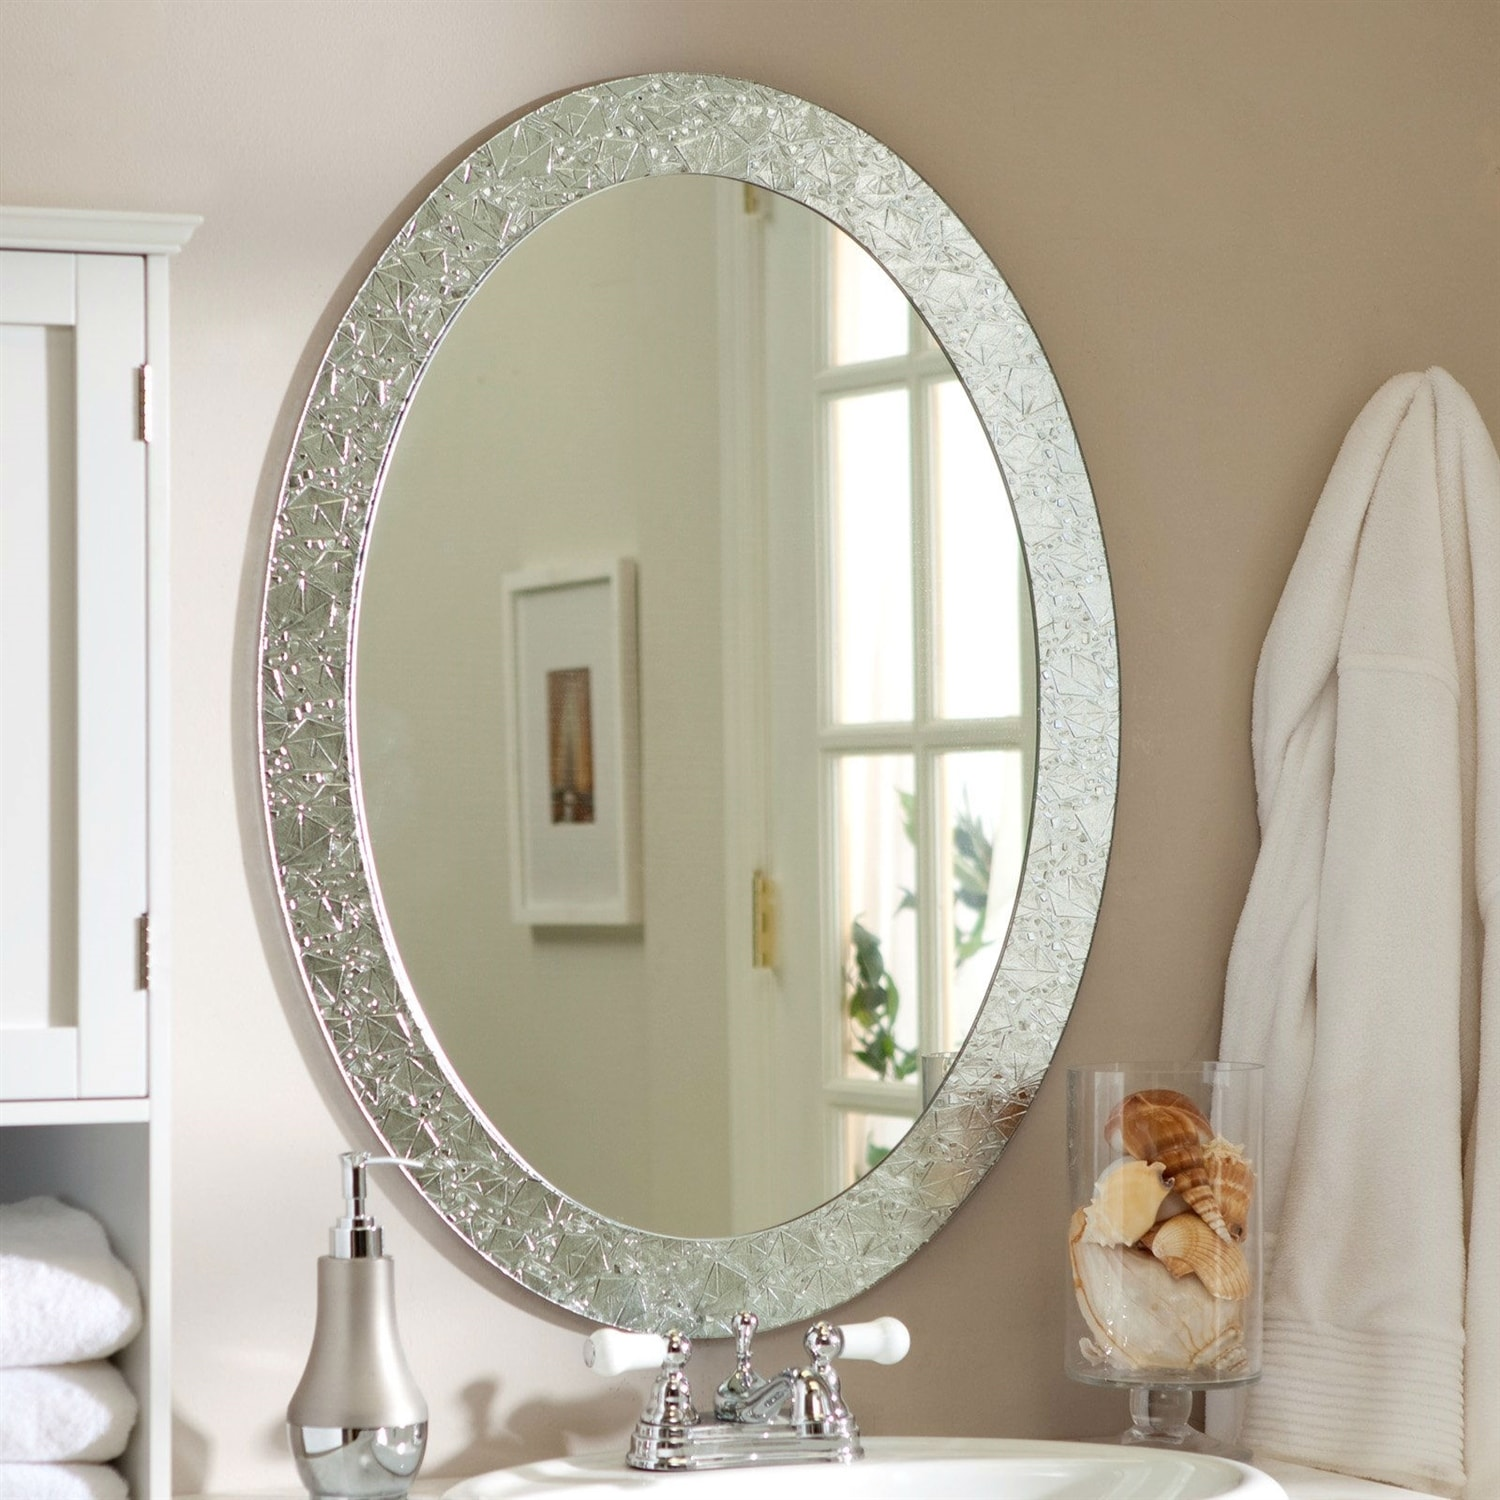 Oval Frame Less Bathroom Vanity Wall Mirror With Elegant Crystal Look Border 31 5l X 23 5w X 5d In Overstock 29084510